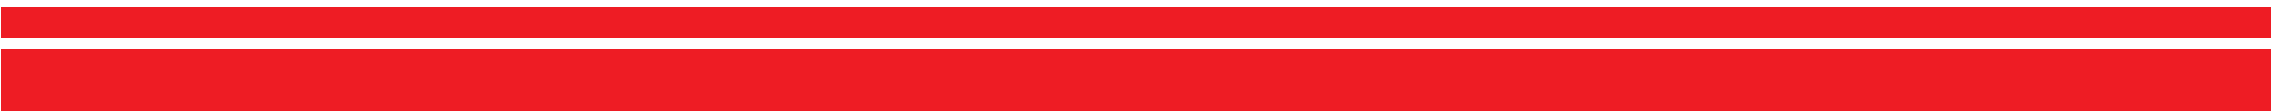 Red Lines Horizontal PNG v1.png